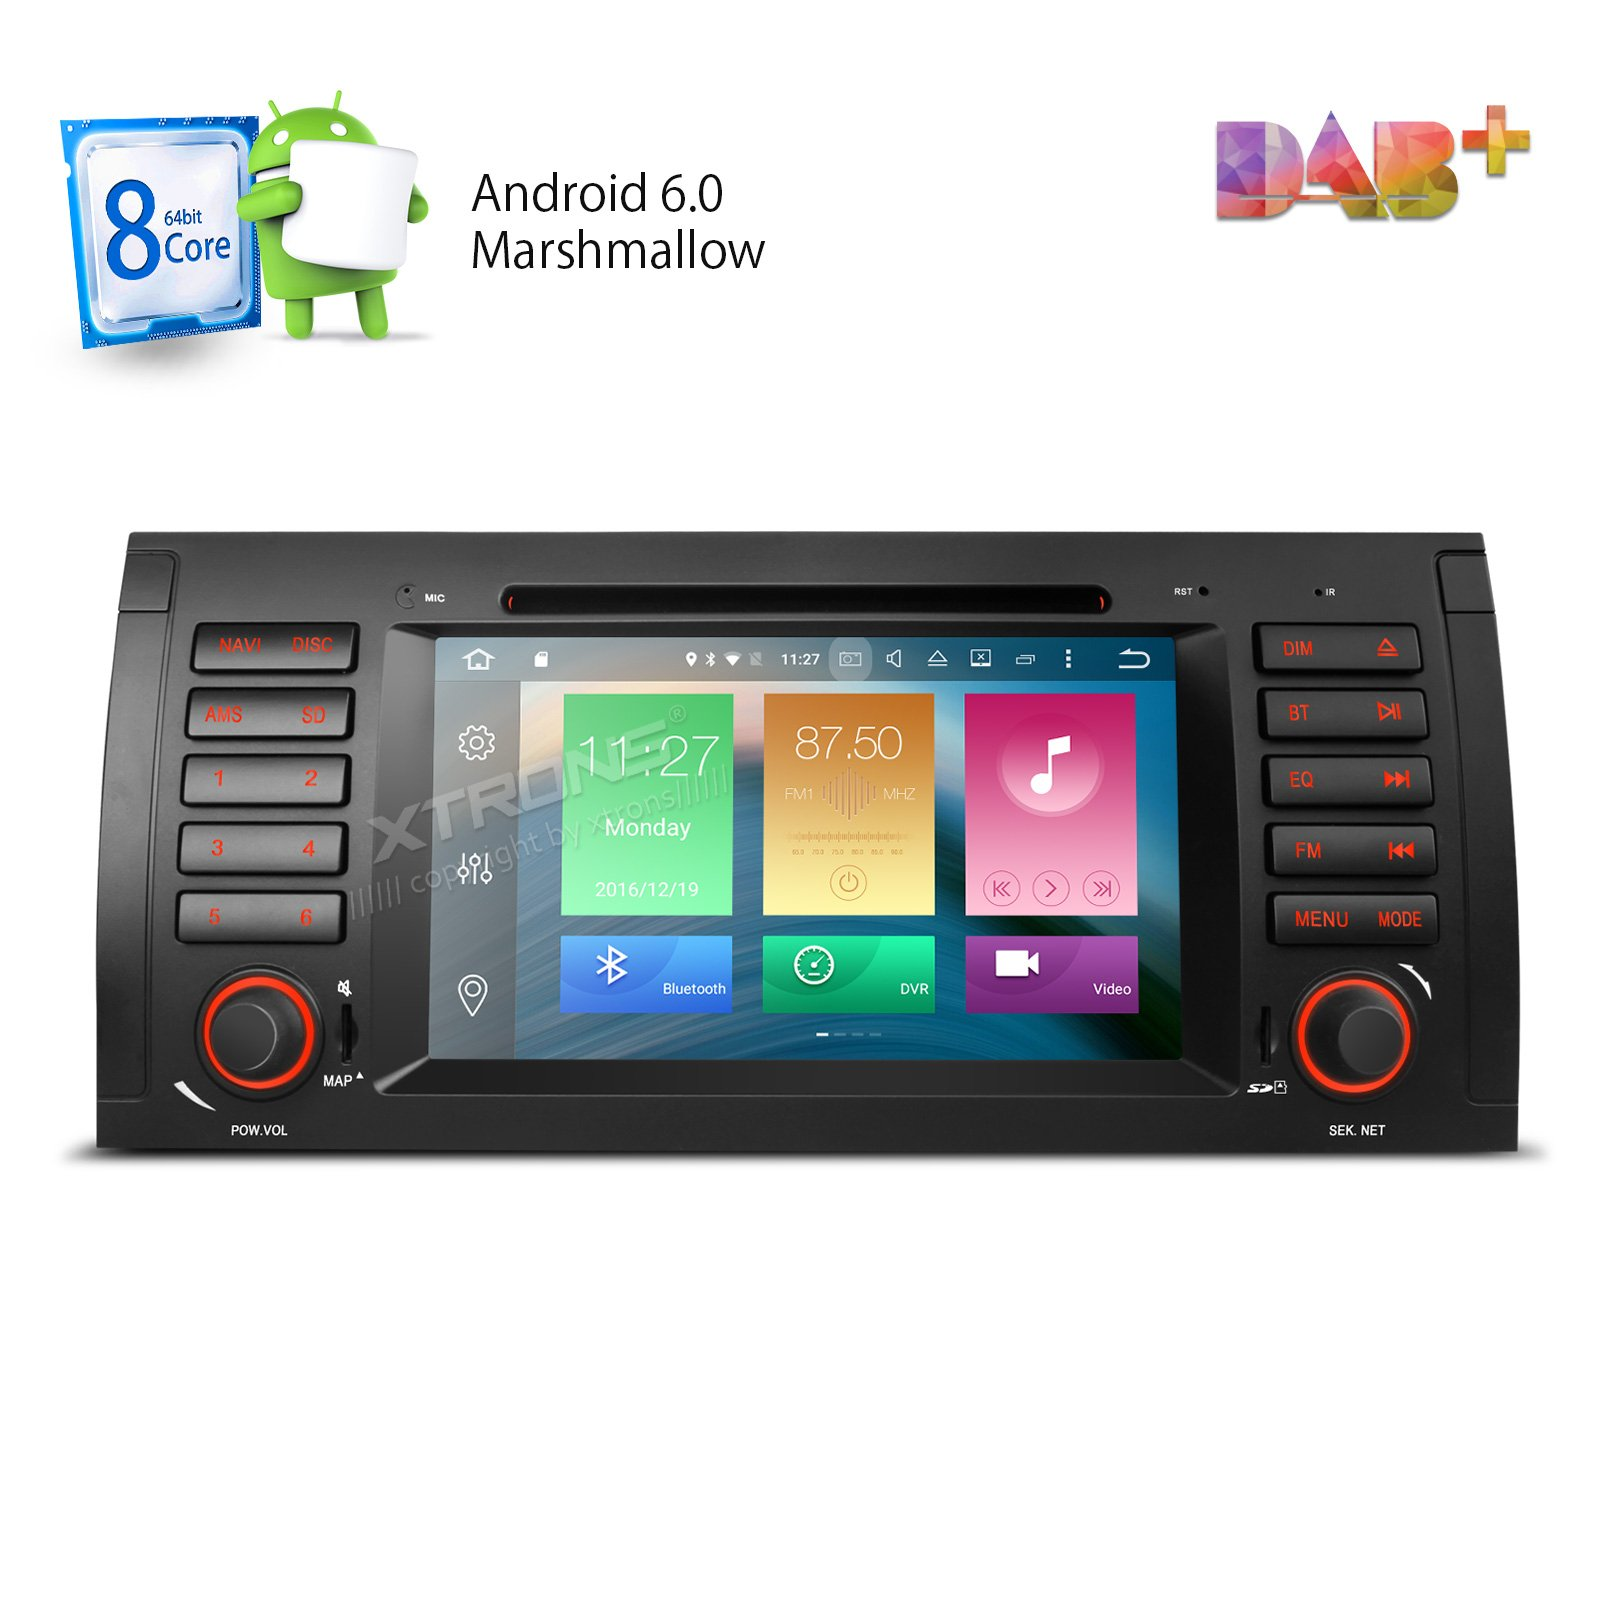 XTRONS Octa-Core 64Bit 2G RAM 32GB ROM 7 Inch Capacitive Touch Screen Car Stereo Radio DVD Player GPS CANbus Screen Mirroring Function OBD2 Tire Pressure Monitoring for BMW E53 X5